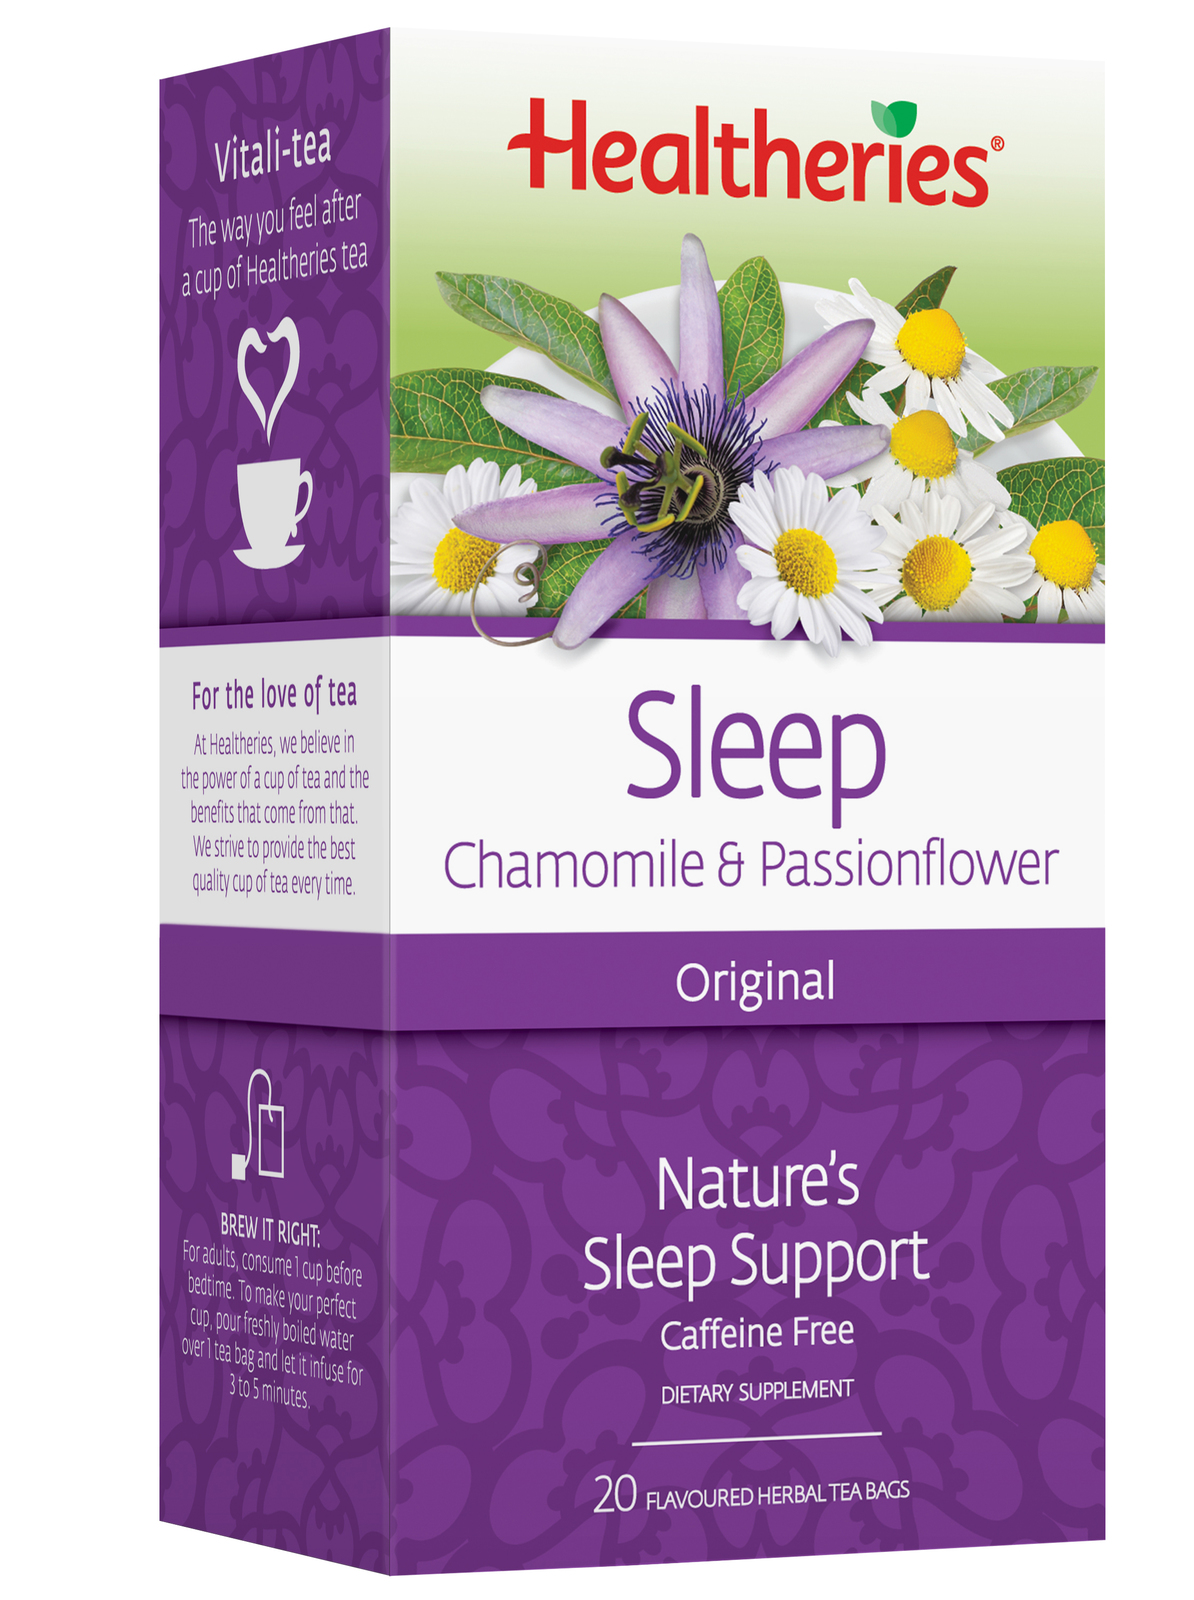 Healtheries Sleep Original Tea (Pack of 20) image